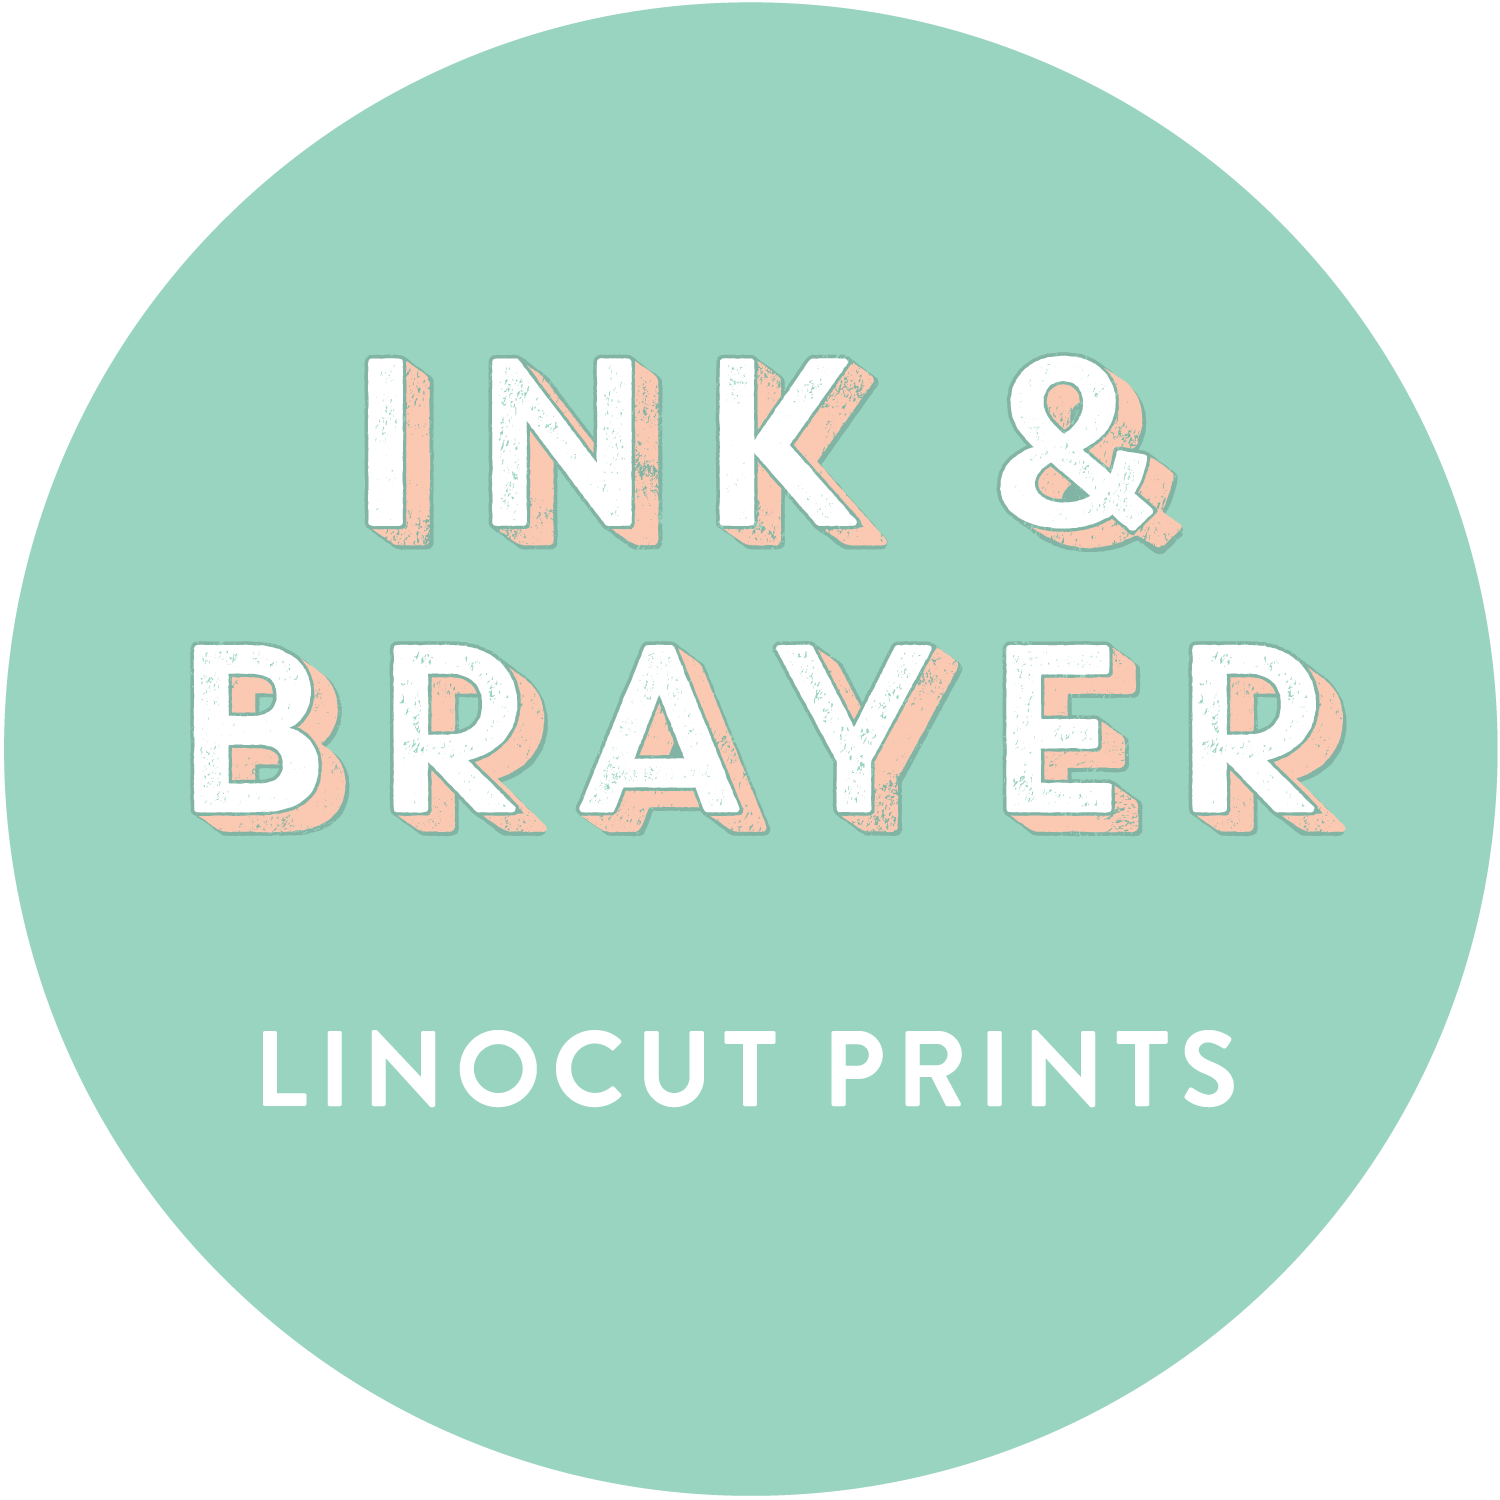 Ink & Brayer